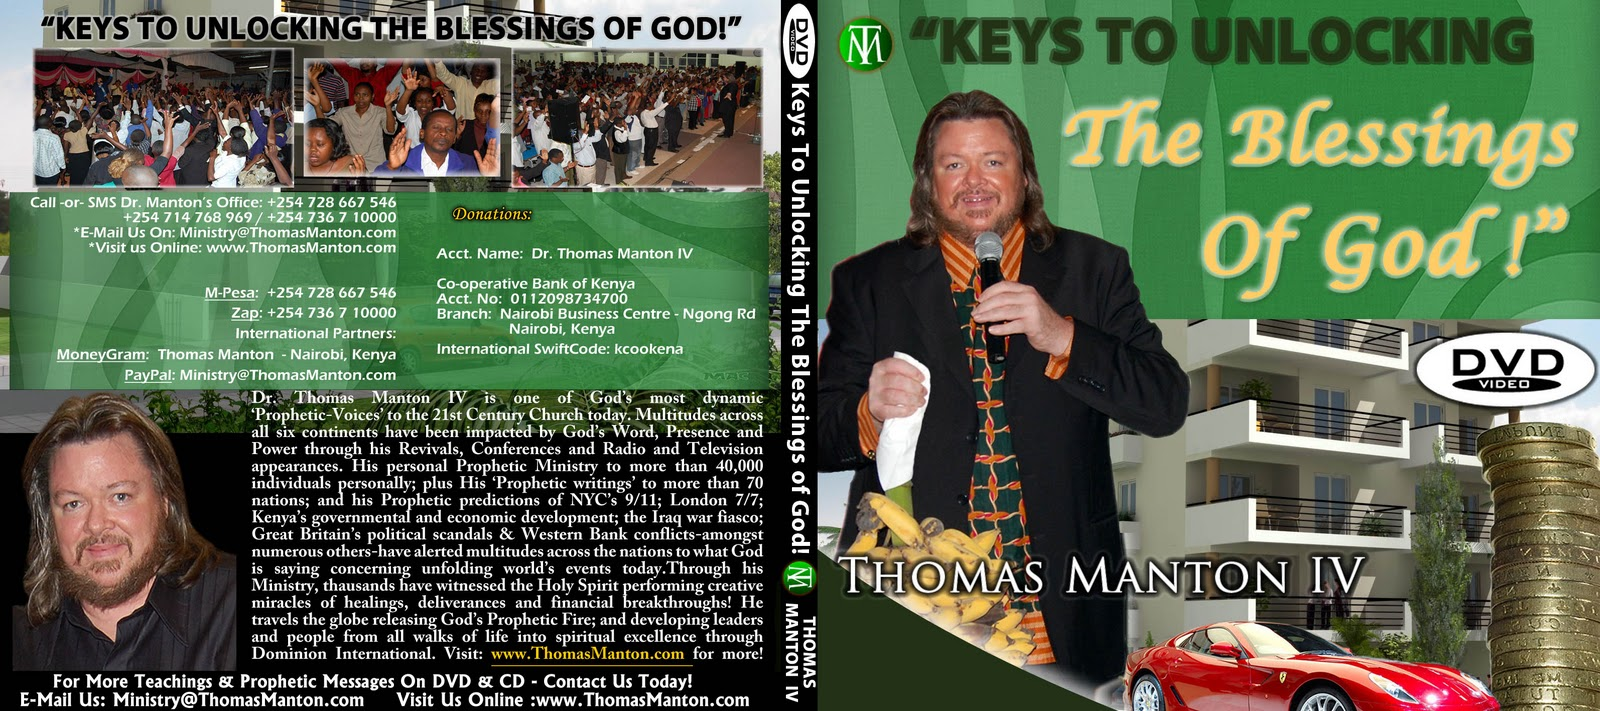 Httpwww Overlordsofchaos Comhtmlorigin Of The Word Jew Html: Dr Thomas Manton IV: Keys To Unlocking The Blessings Of God